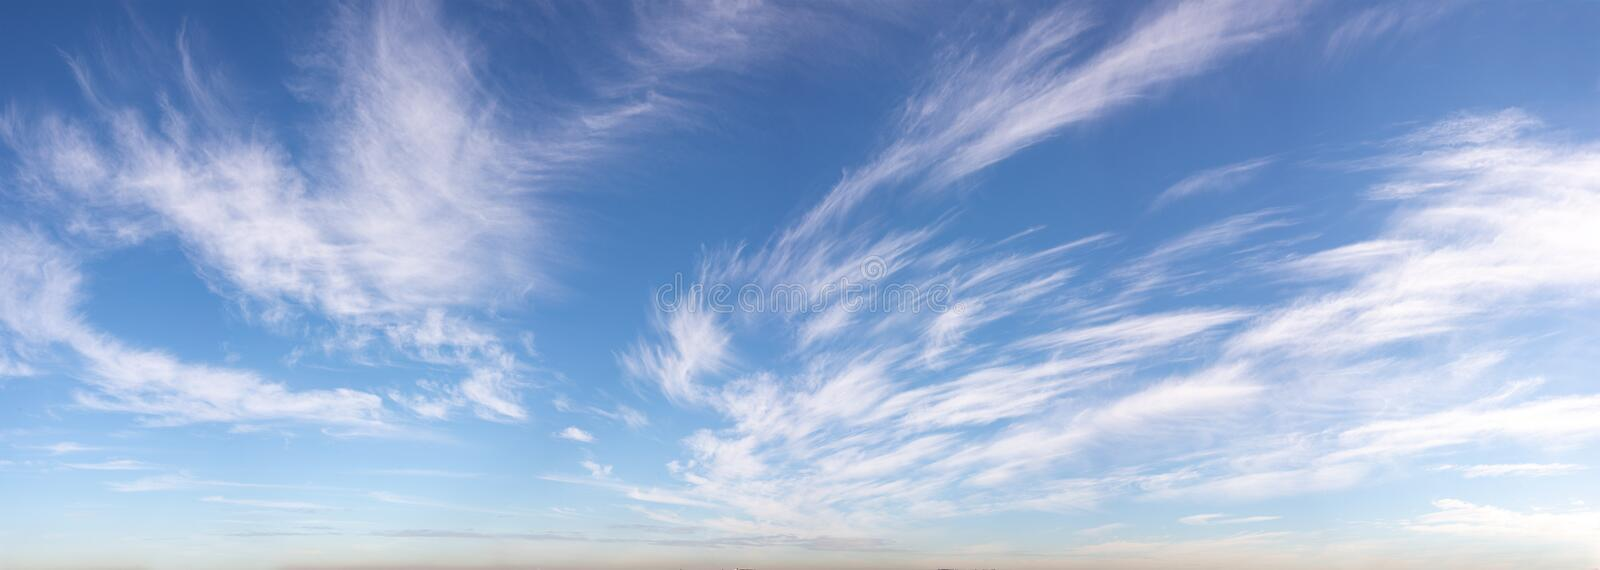 Panorama horizontal do céu das nuvens Wispy imagem de stock royalty free